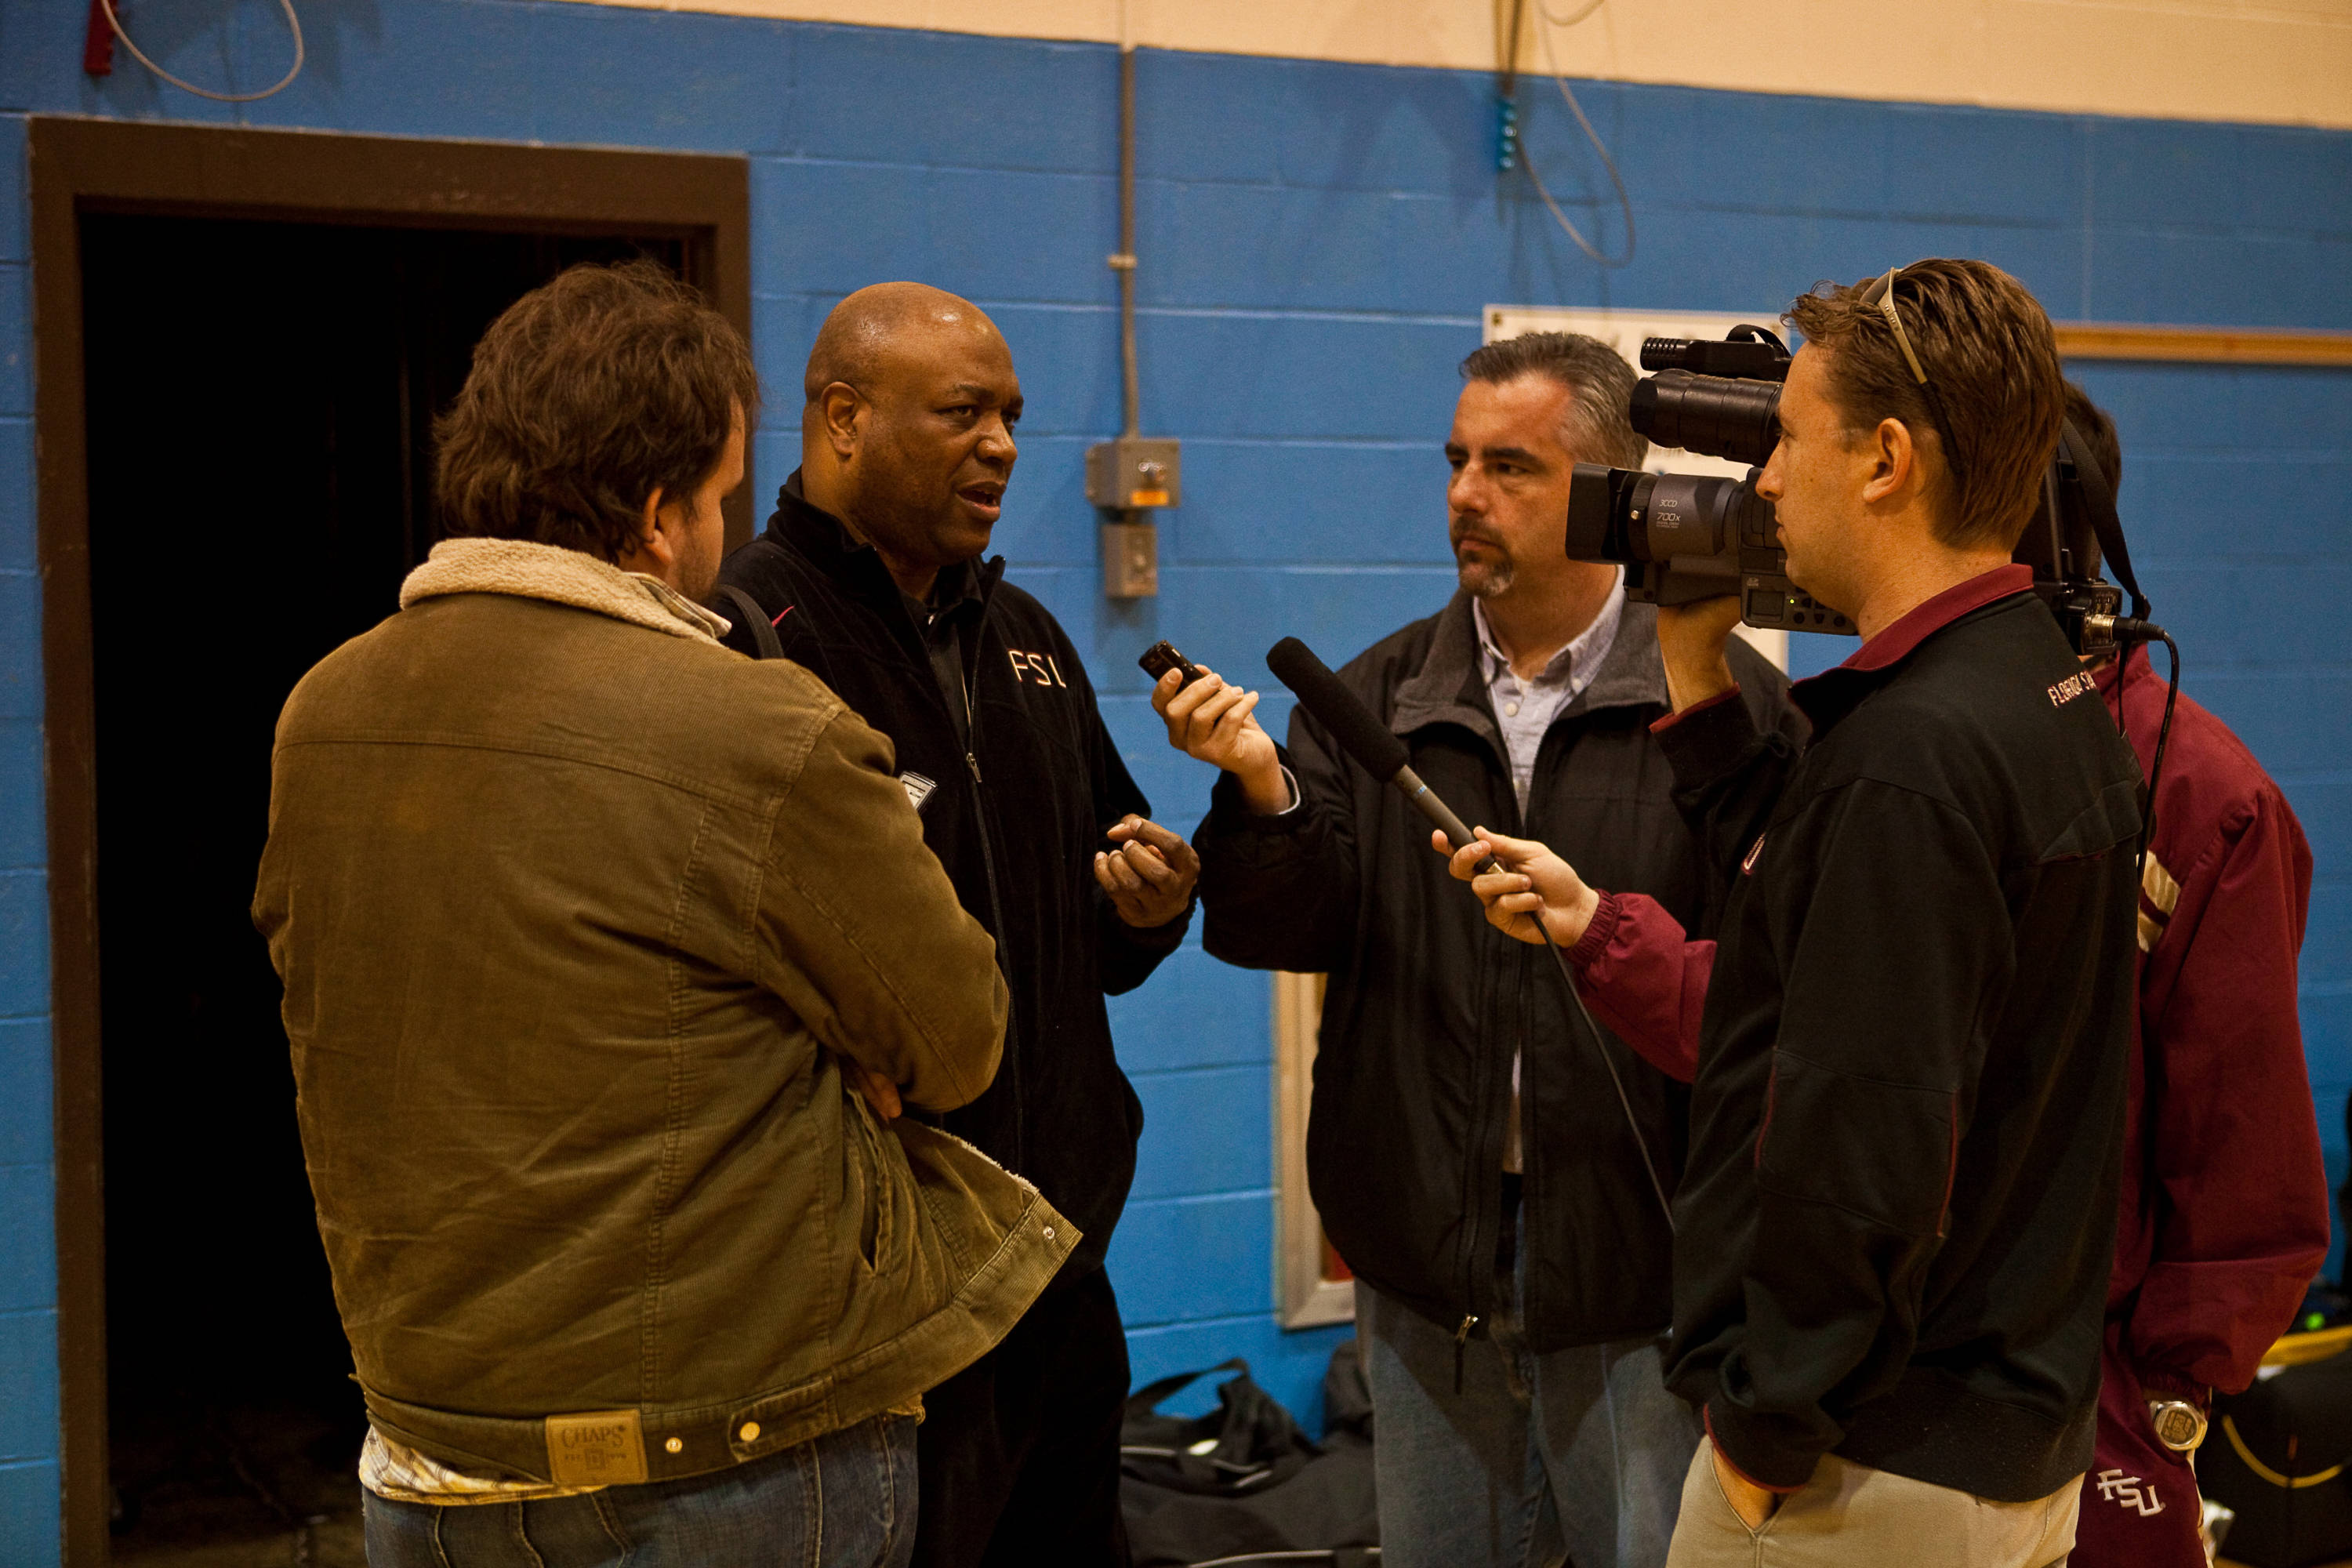 Coach Hamilton talks with some of the media outside FSU's locker room at the HSBC Arena.